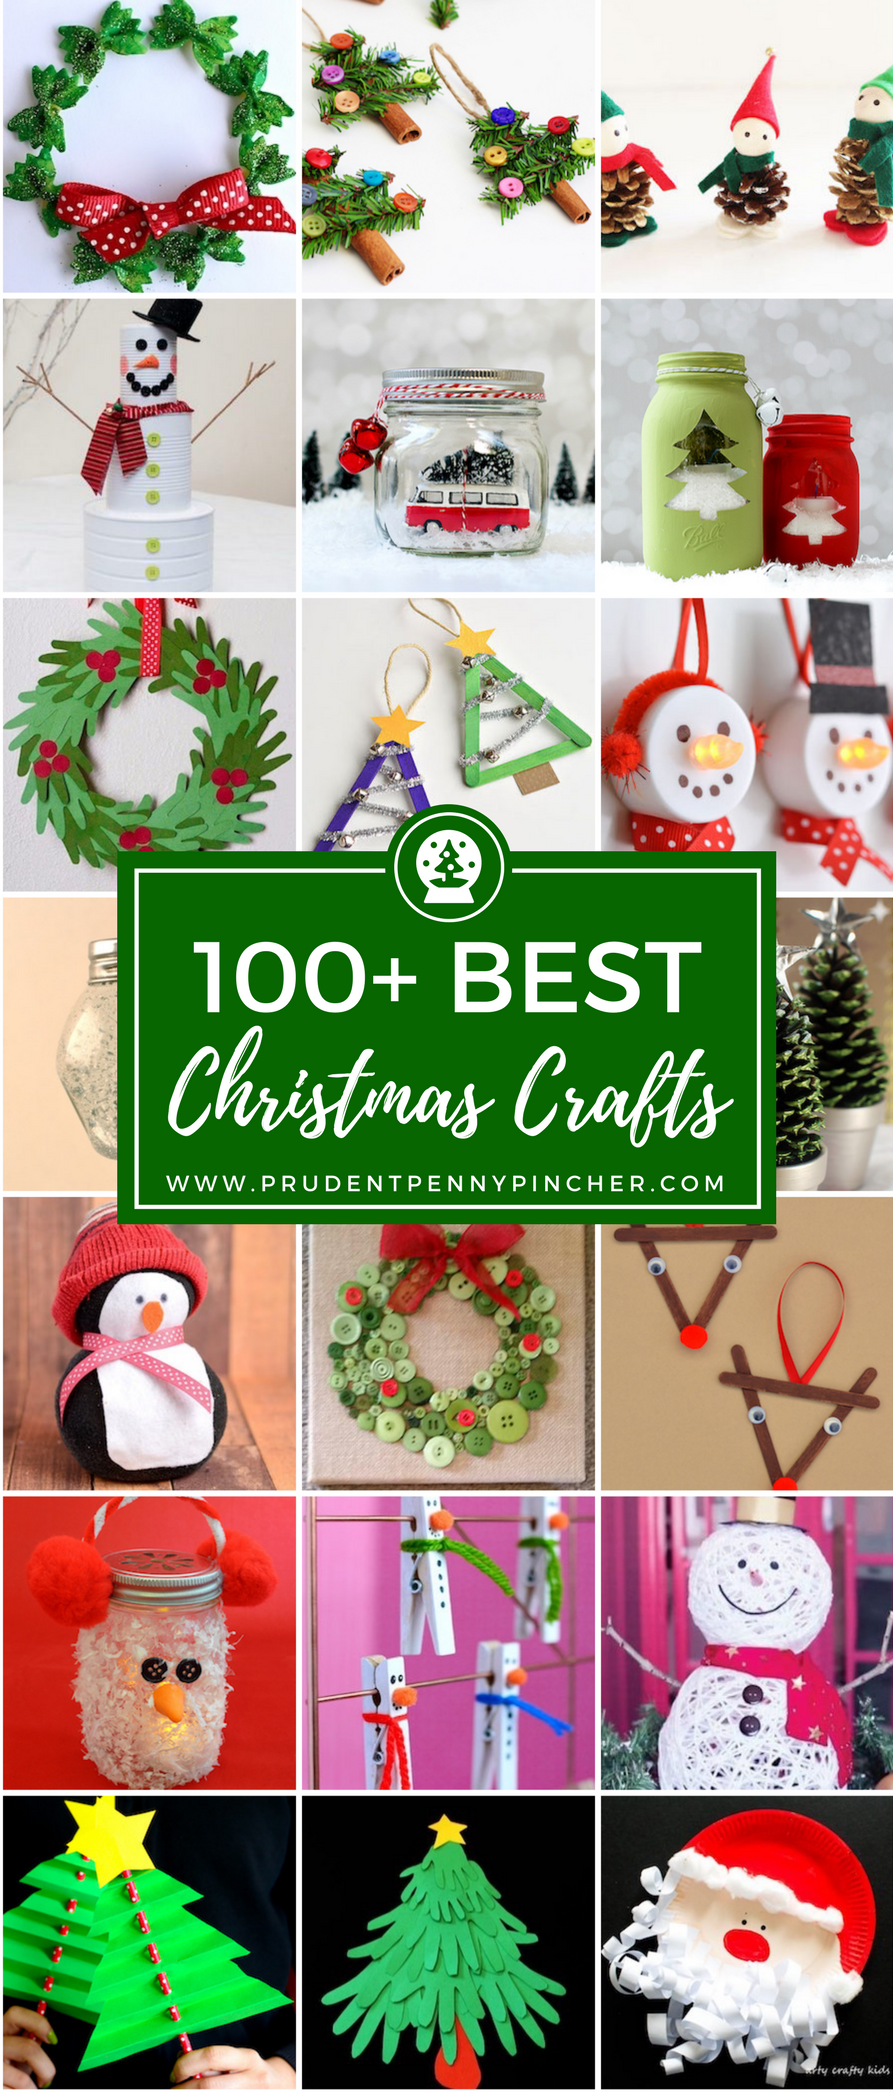 100 Best Christmas Crafts - Prudent Penny Pincher